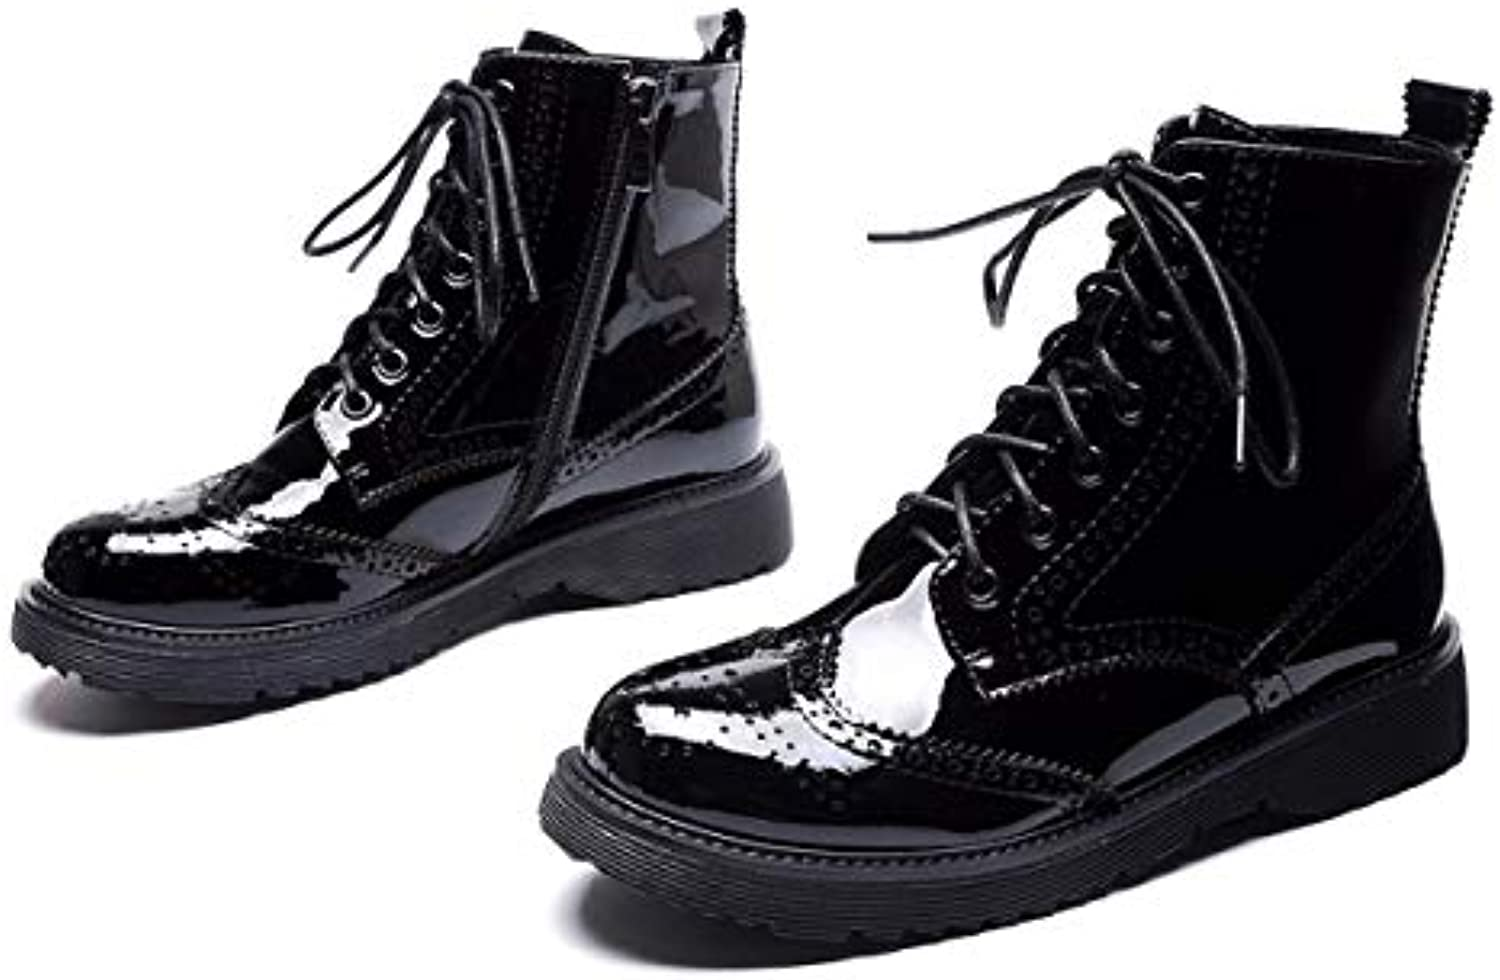 Laque Kokqsx Bottes Mesdames Mode Court Martin n4YWRPSwY